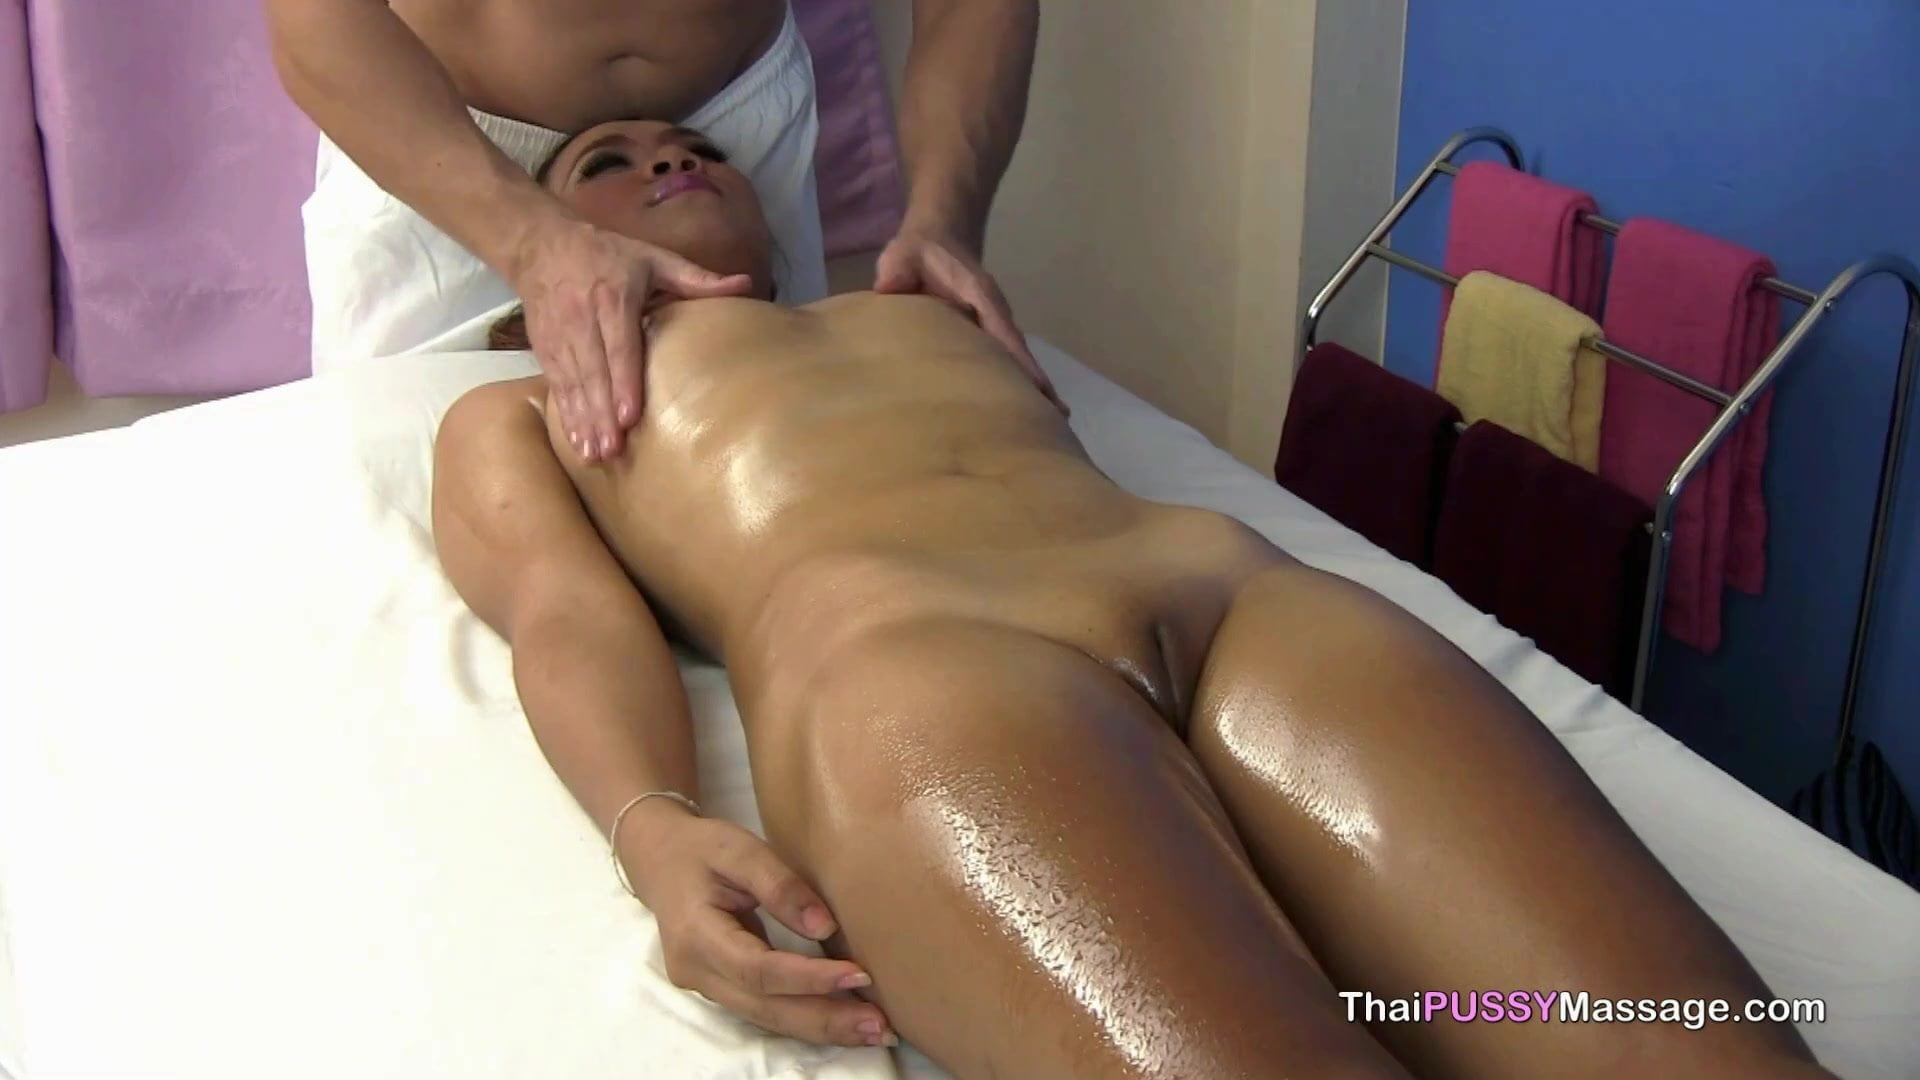 in sex Body asia sharing